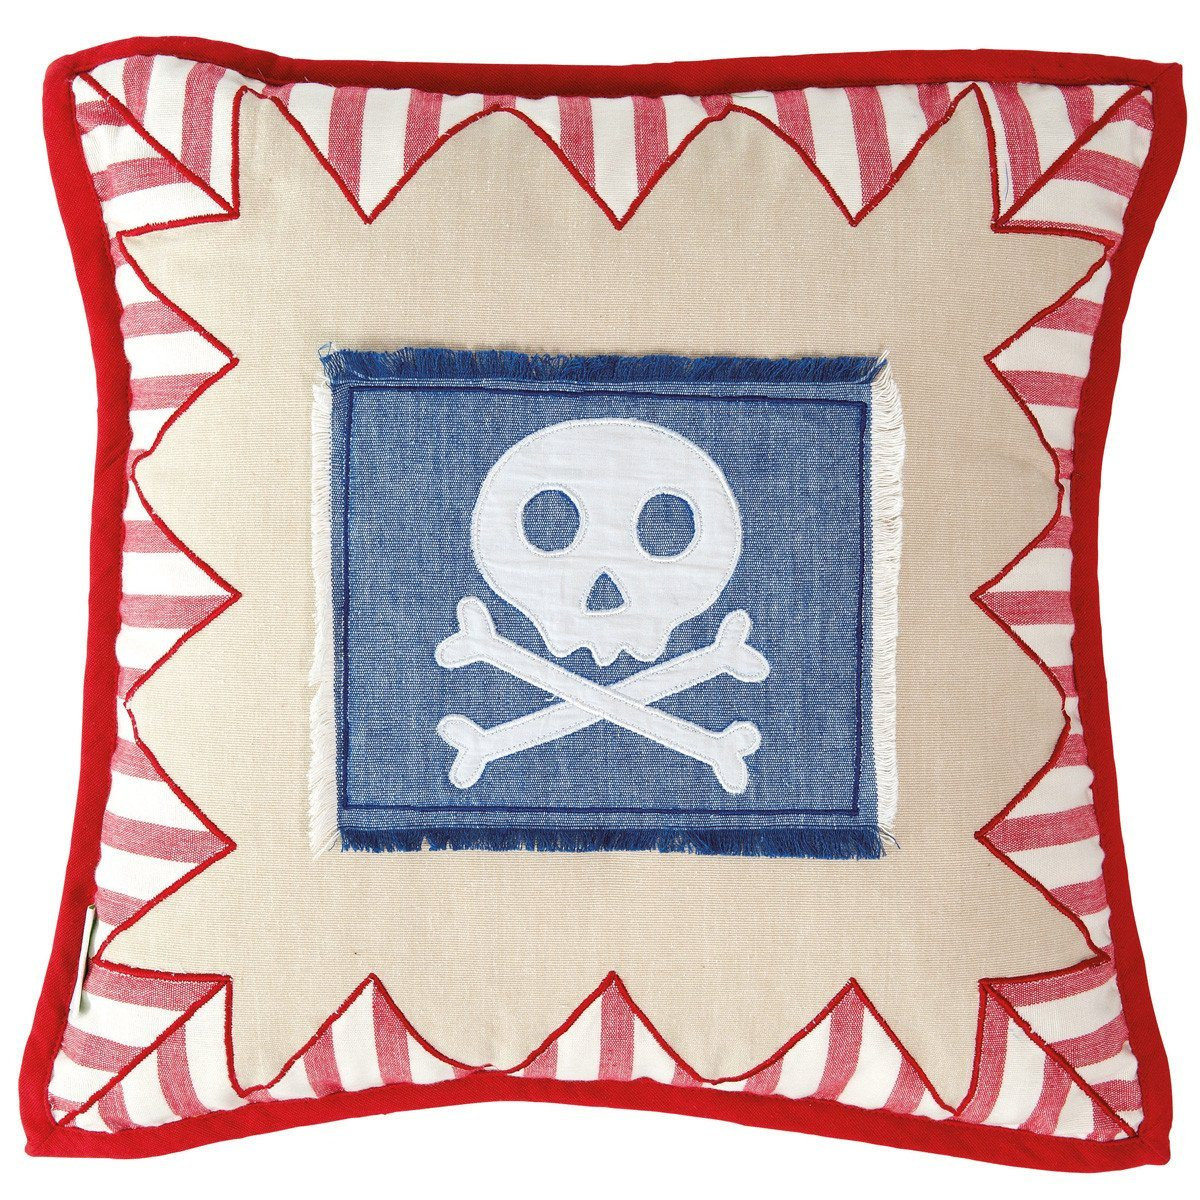 Pirate Cushion Cover